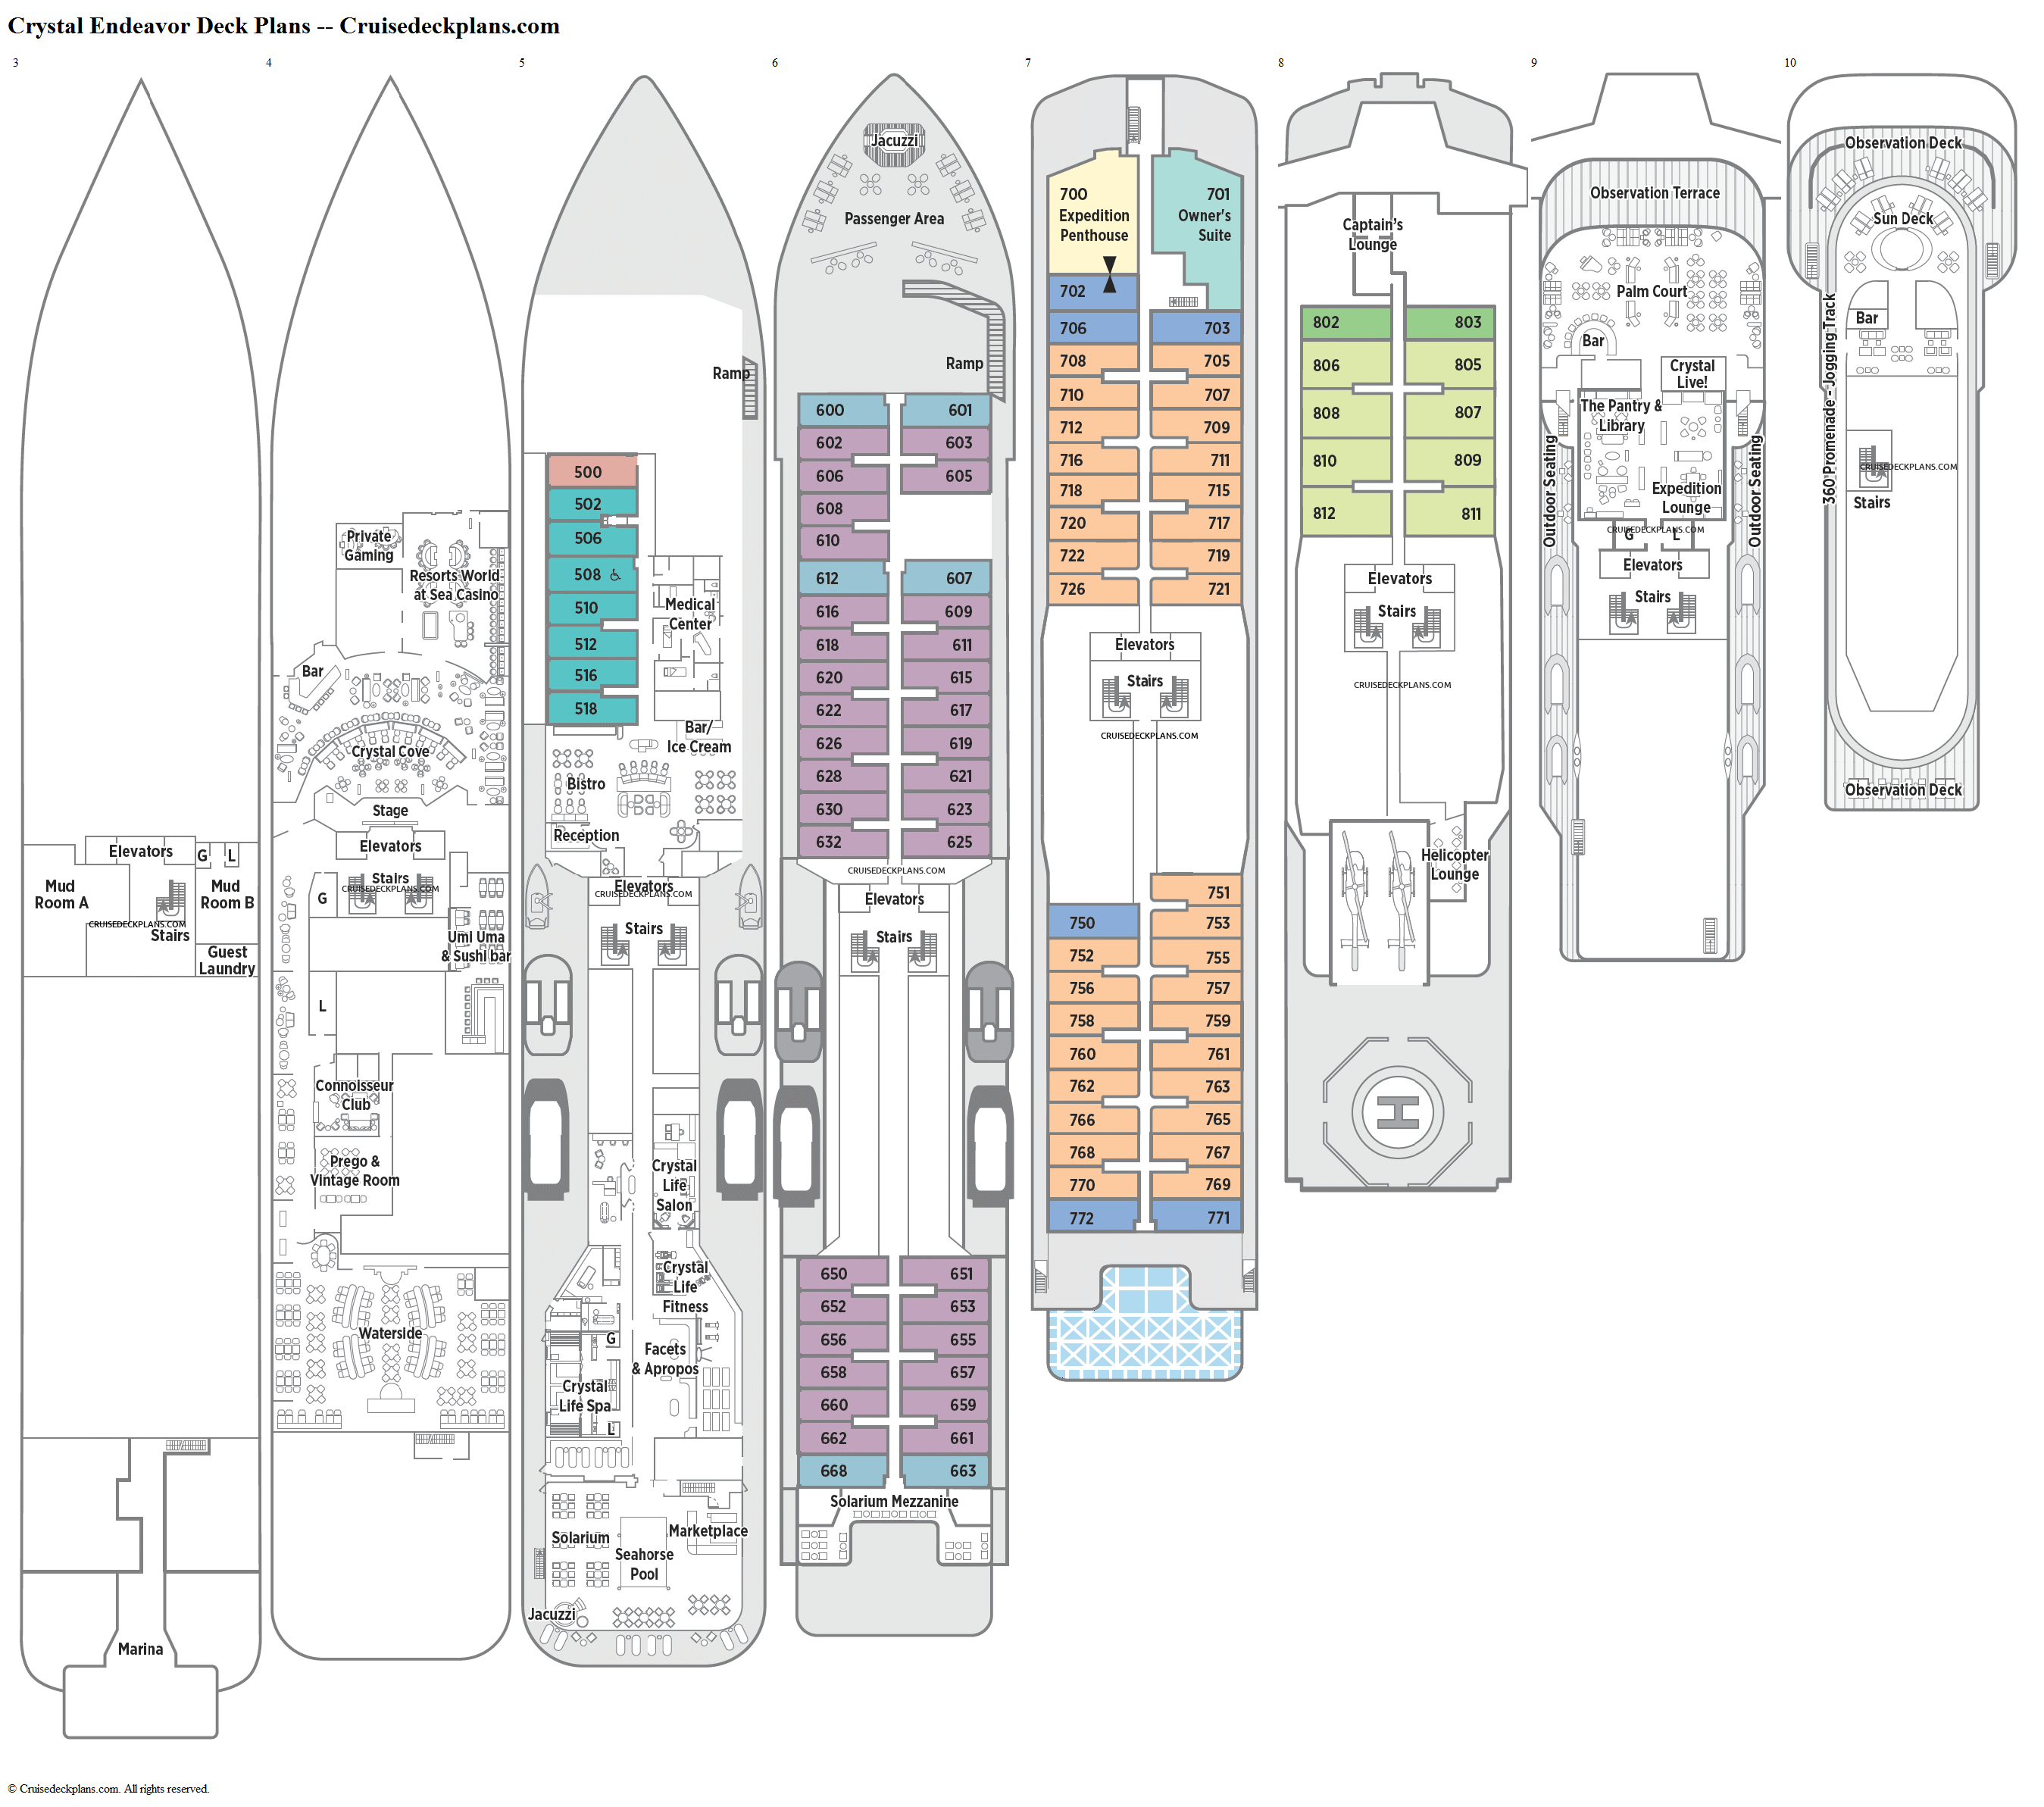 Crystal Endeavor deck plans image